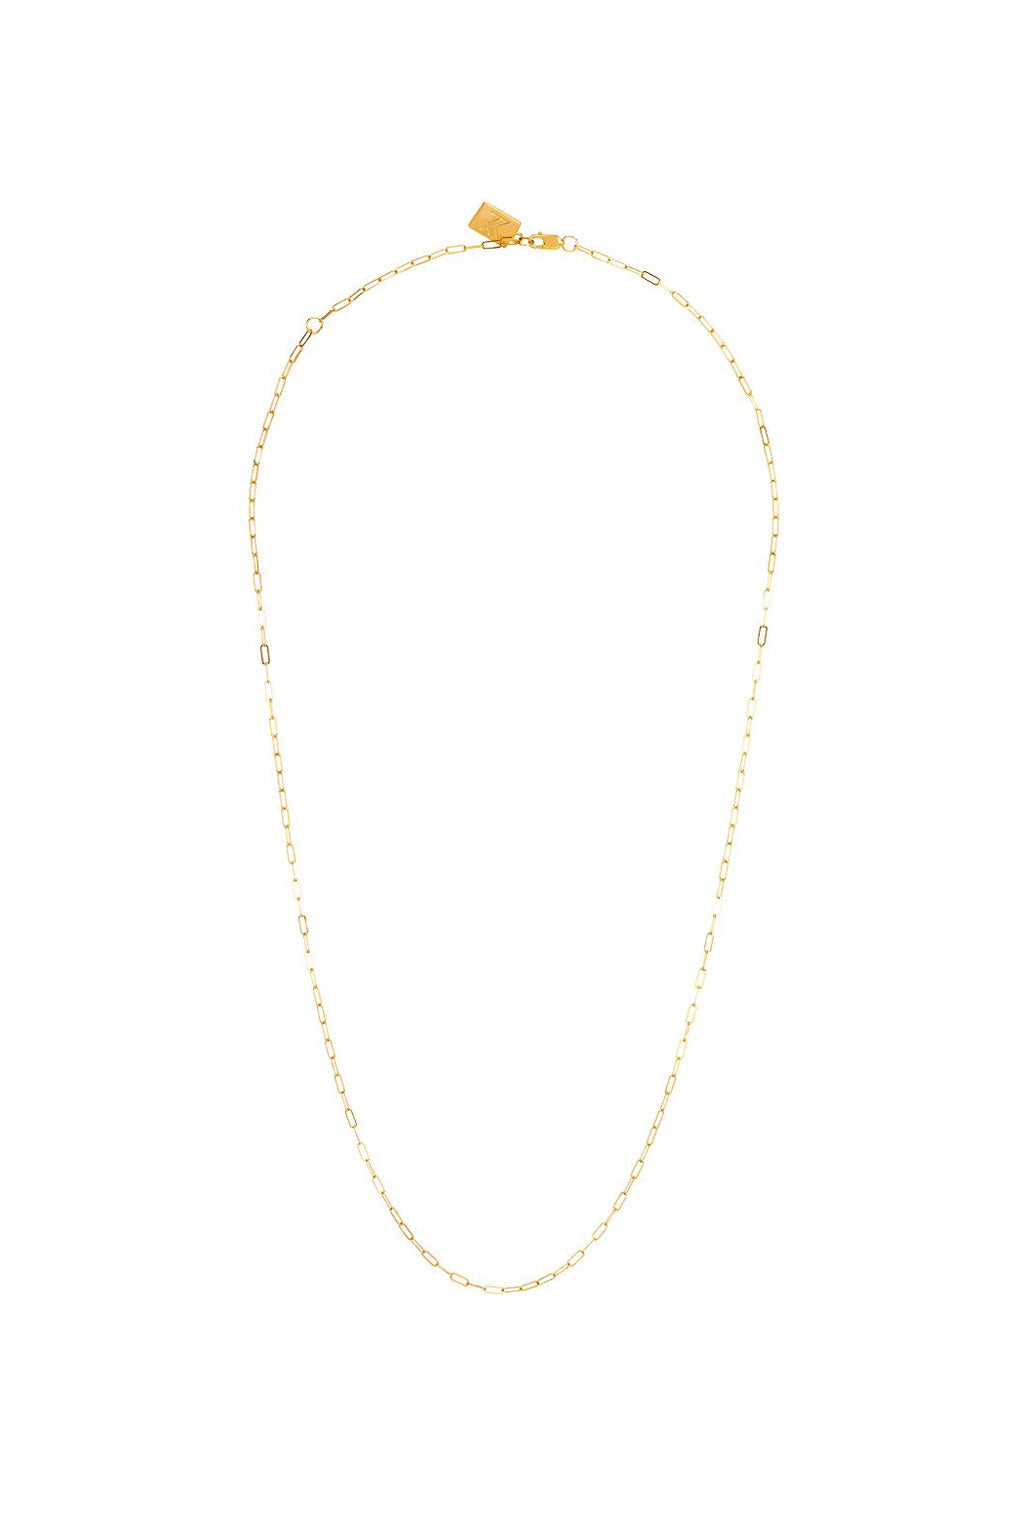 Miranda Frye Alex Chain 26-28 inches